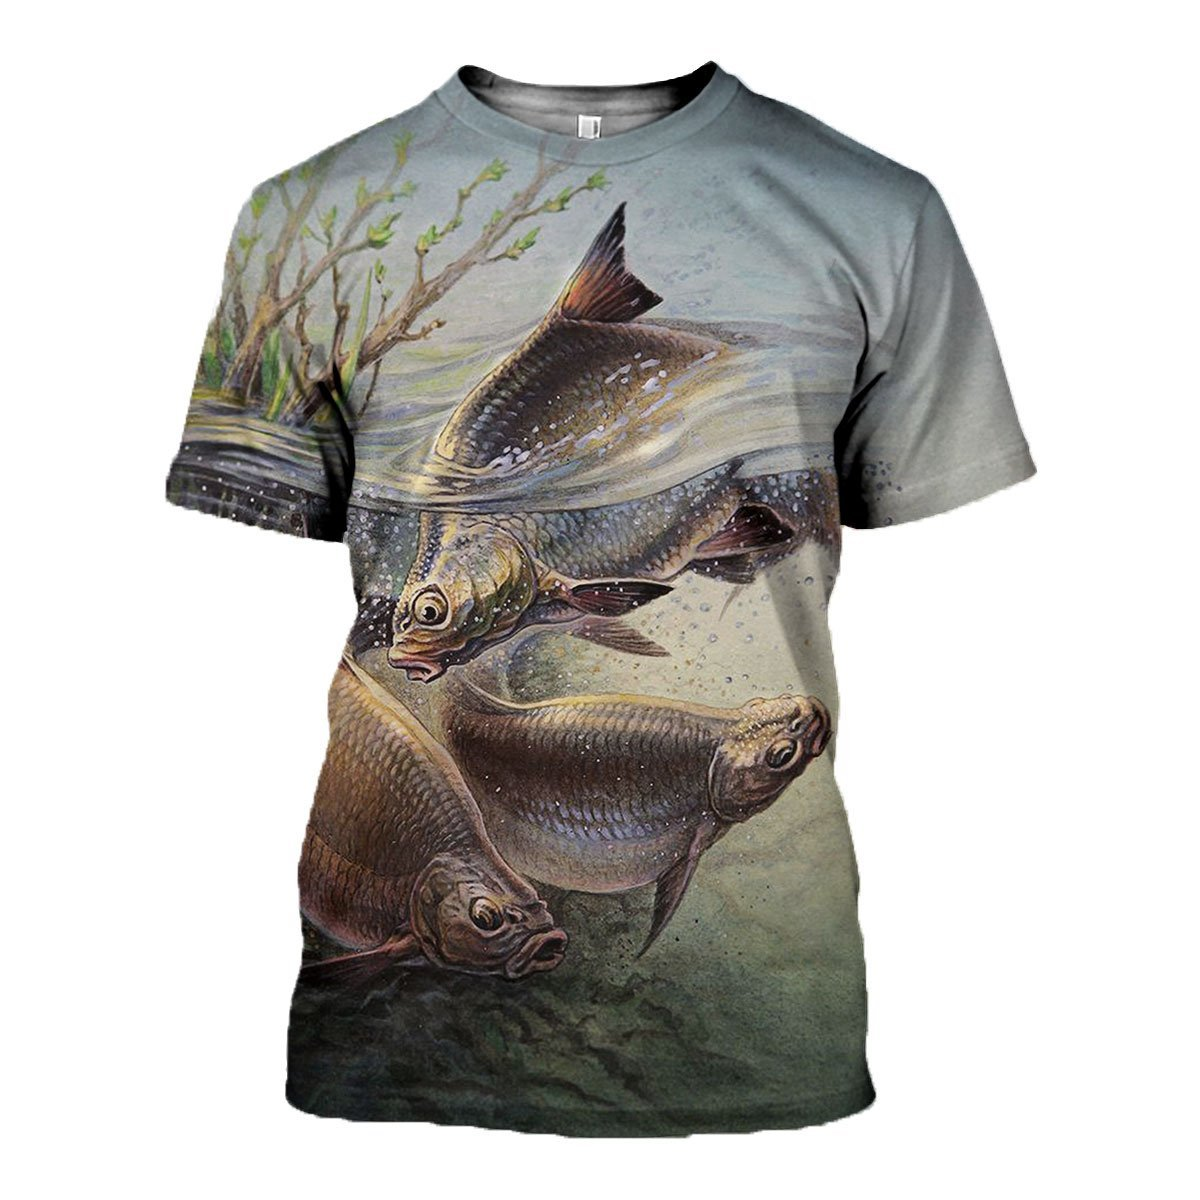 3D All Over Printed Art Fishing Shirts and Shorts